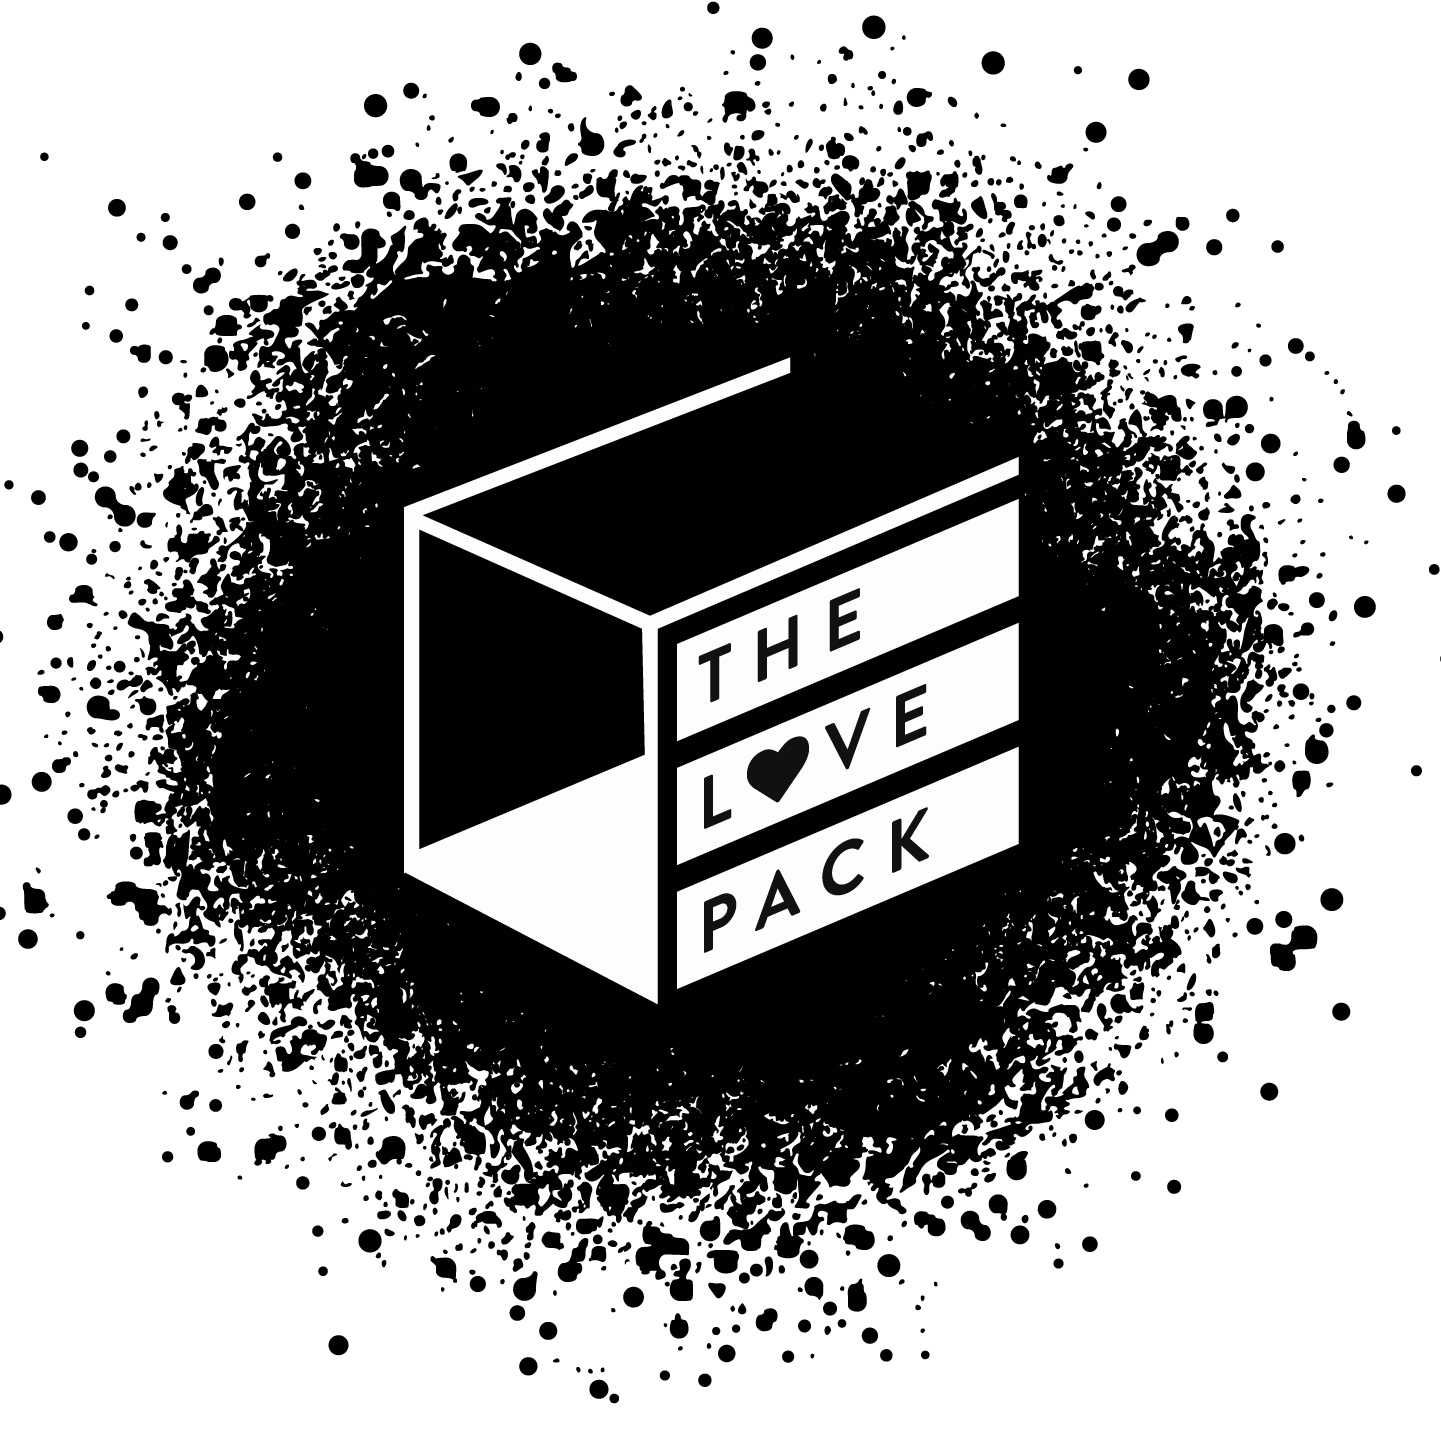 - The Love Pack is our year round collection of toiletries and underwear items donated by the public at a host of drop off points in and around Belfast.We ask the Northern Irish public to collect and spread the word. With their incredible support our collection has grown to over £17,000 worth of items donated to our last campaign.